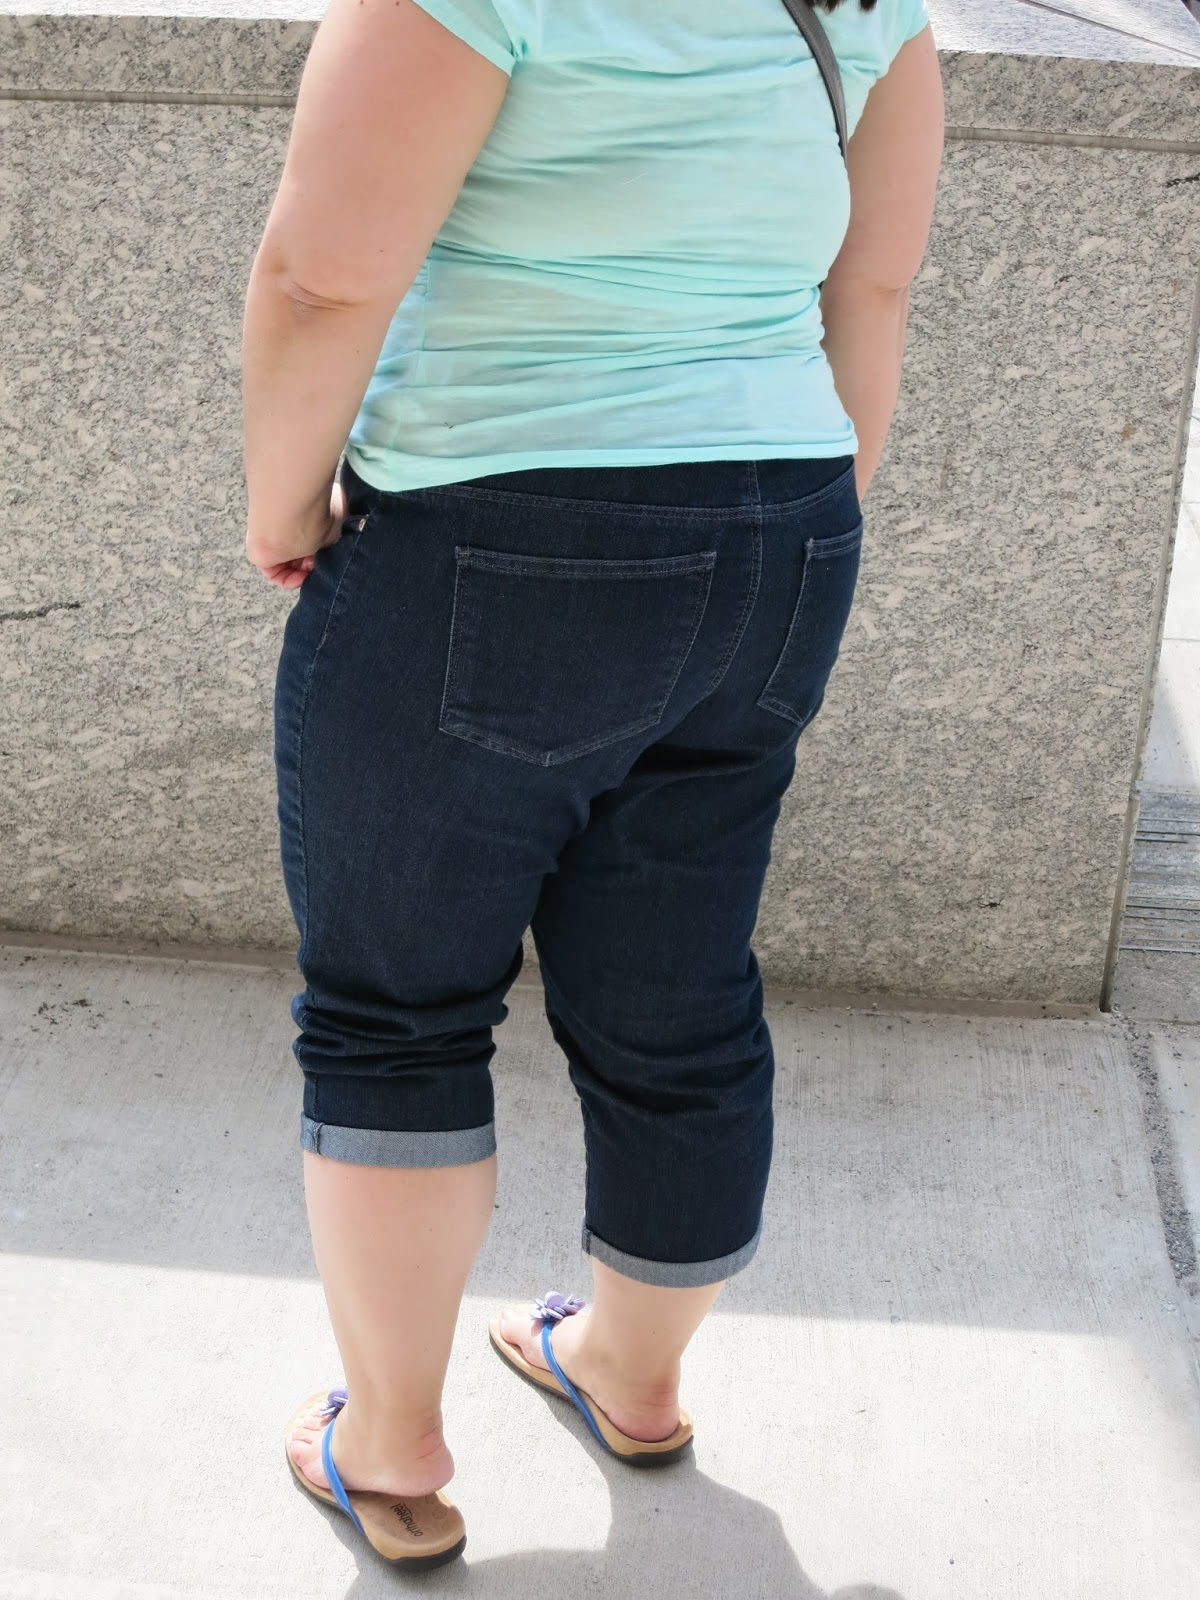 b420fed1 I was able to wear The Natural Fit Style Up Kennedy Pull On Capri shopping,  and I have to say they were so very comfortable, they felt like I was  wearing a ...